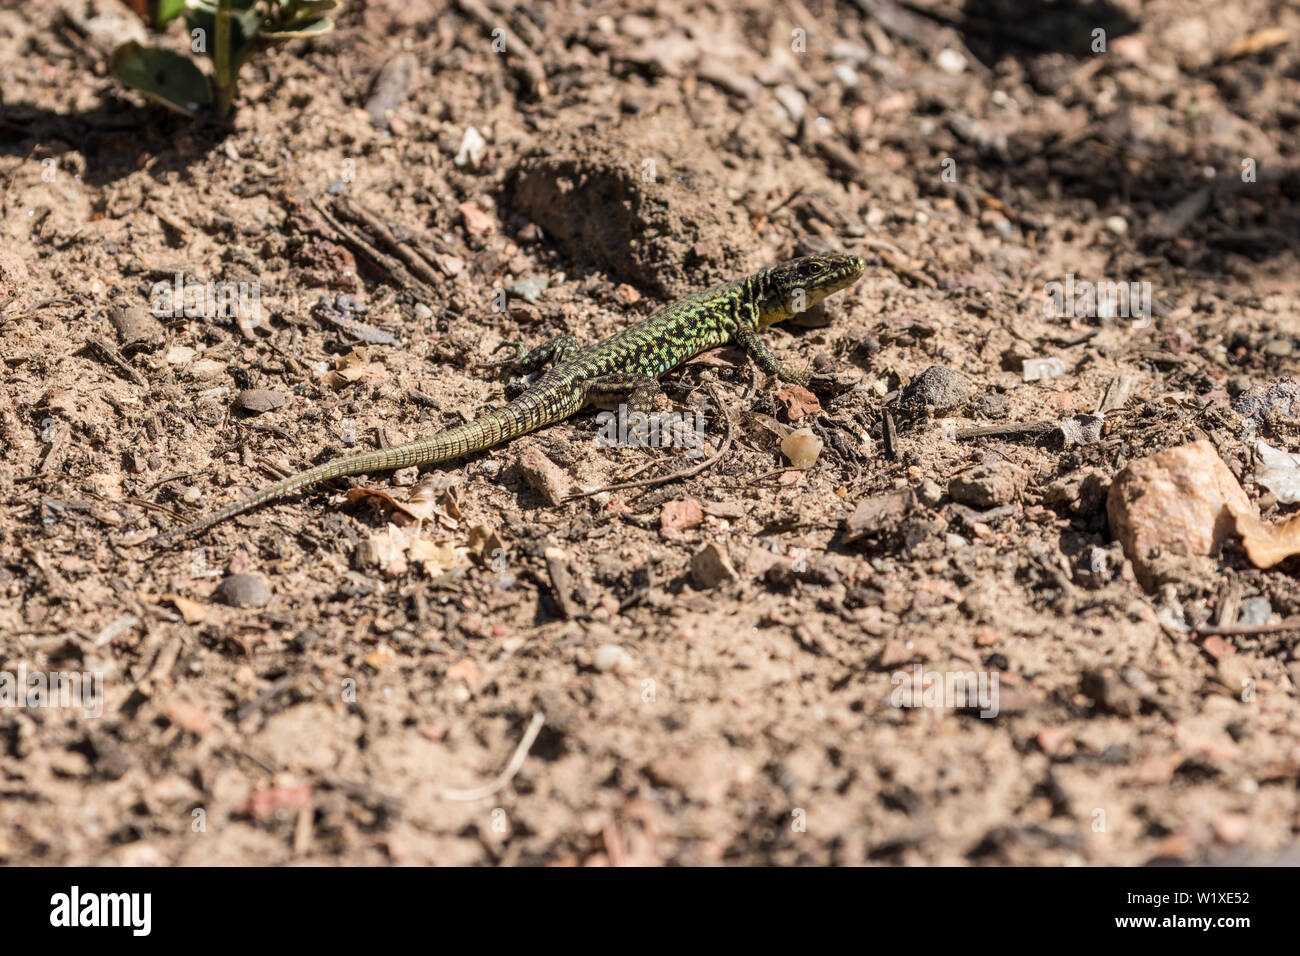 A green reticulated common wall lizard on a boulder ground in the sunshine. Frankfurt am Main. - Stock Image